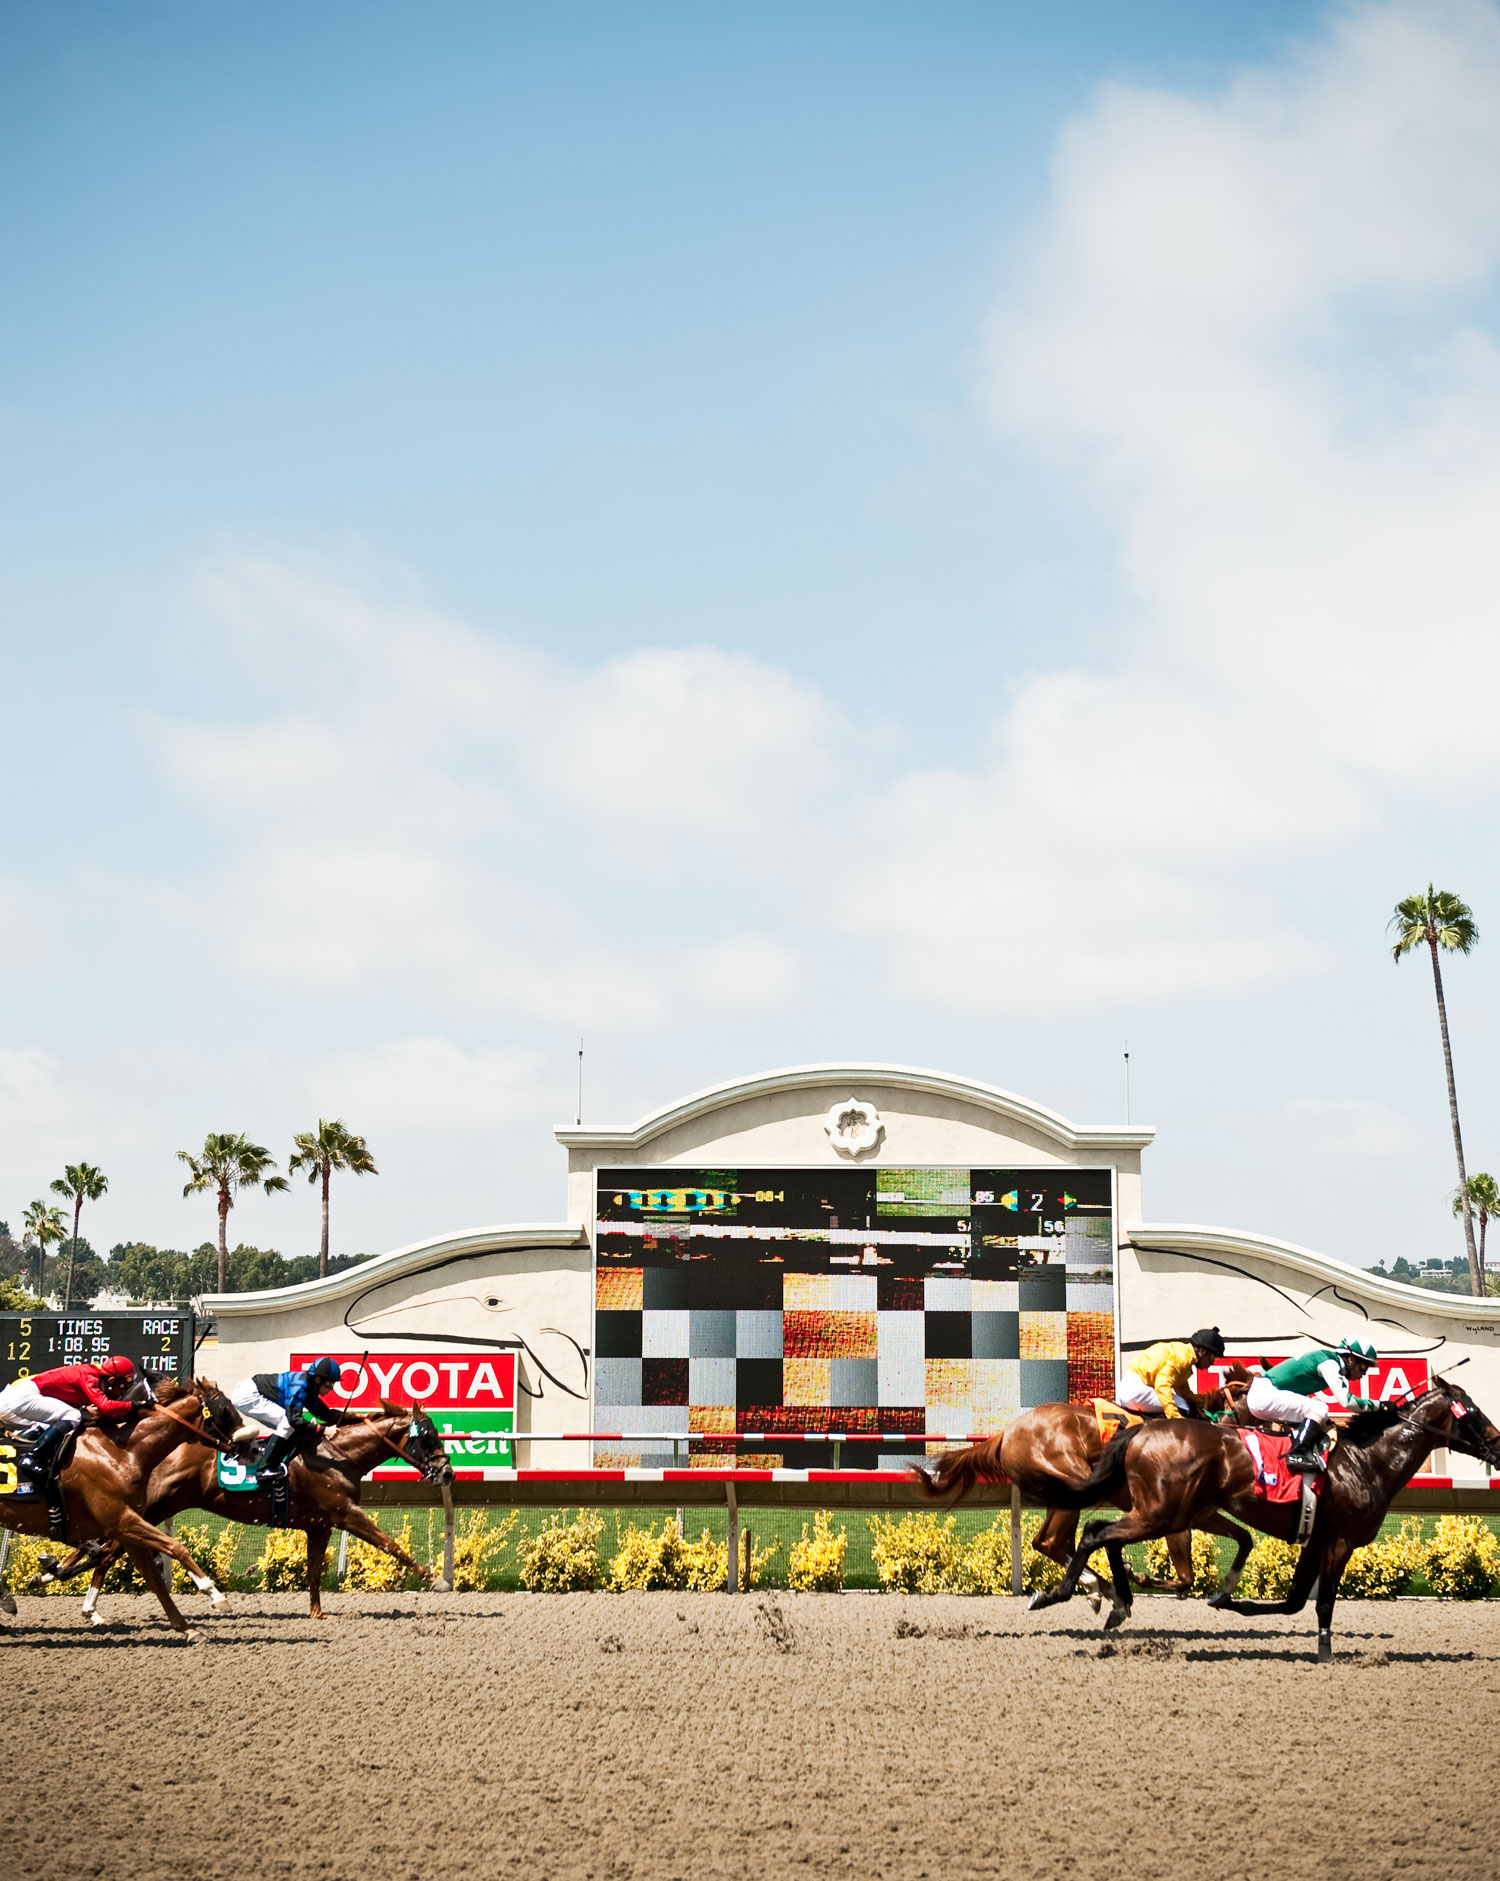 A Day at the Races in Del Mar